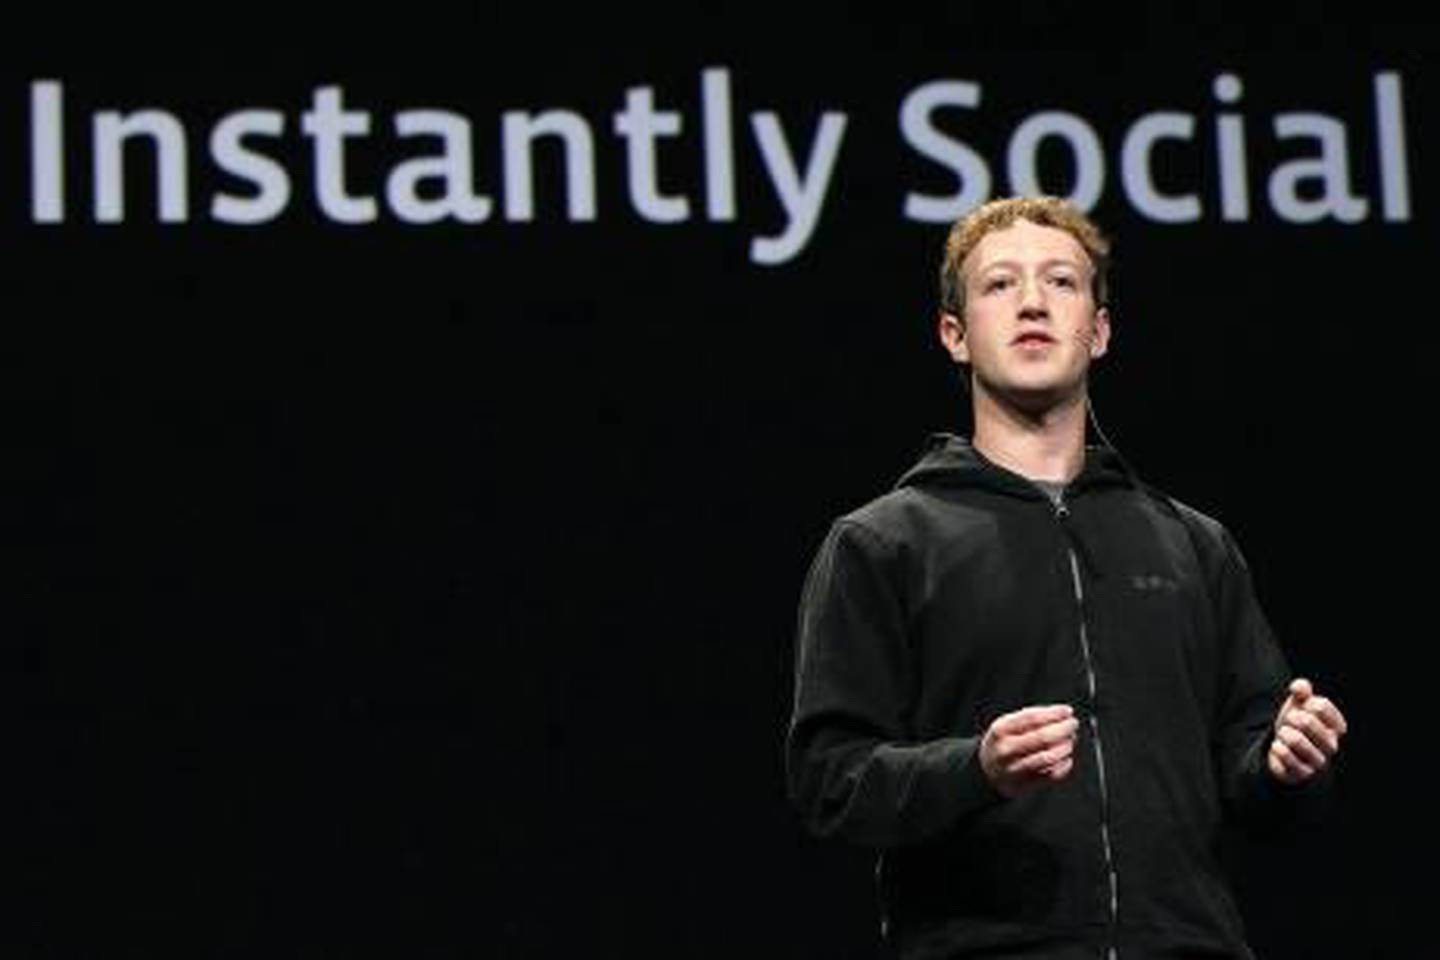 SAN FRANCISCO - APRIL 21: Facebook founder and CEO Mark Zuckerberg delivers the opening keynote address at the f8 Developer Conference April 21, 2010 in San Francisco, California. Zuckerberg kicked off the the one day conference for developers that features breakout sessions on the future of social technologies.   Justin Sullivan/Getty Images/AFP